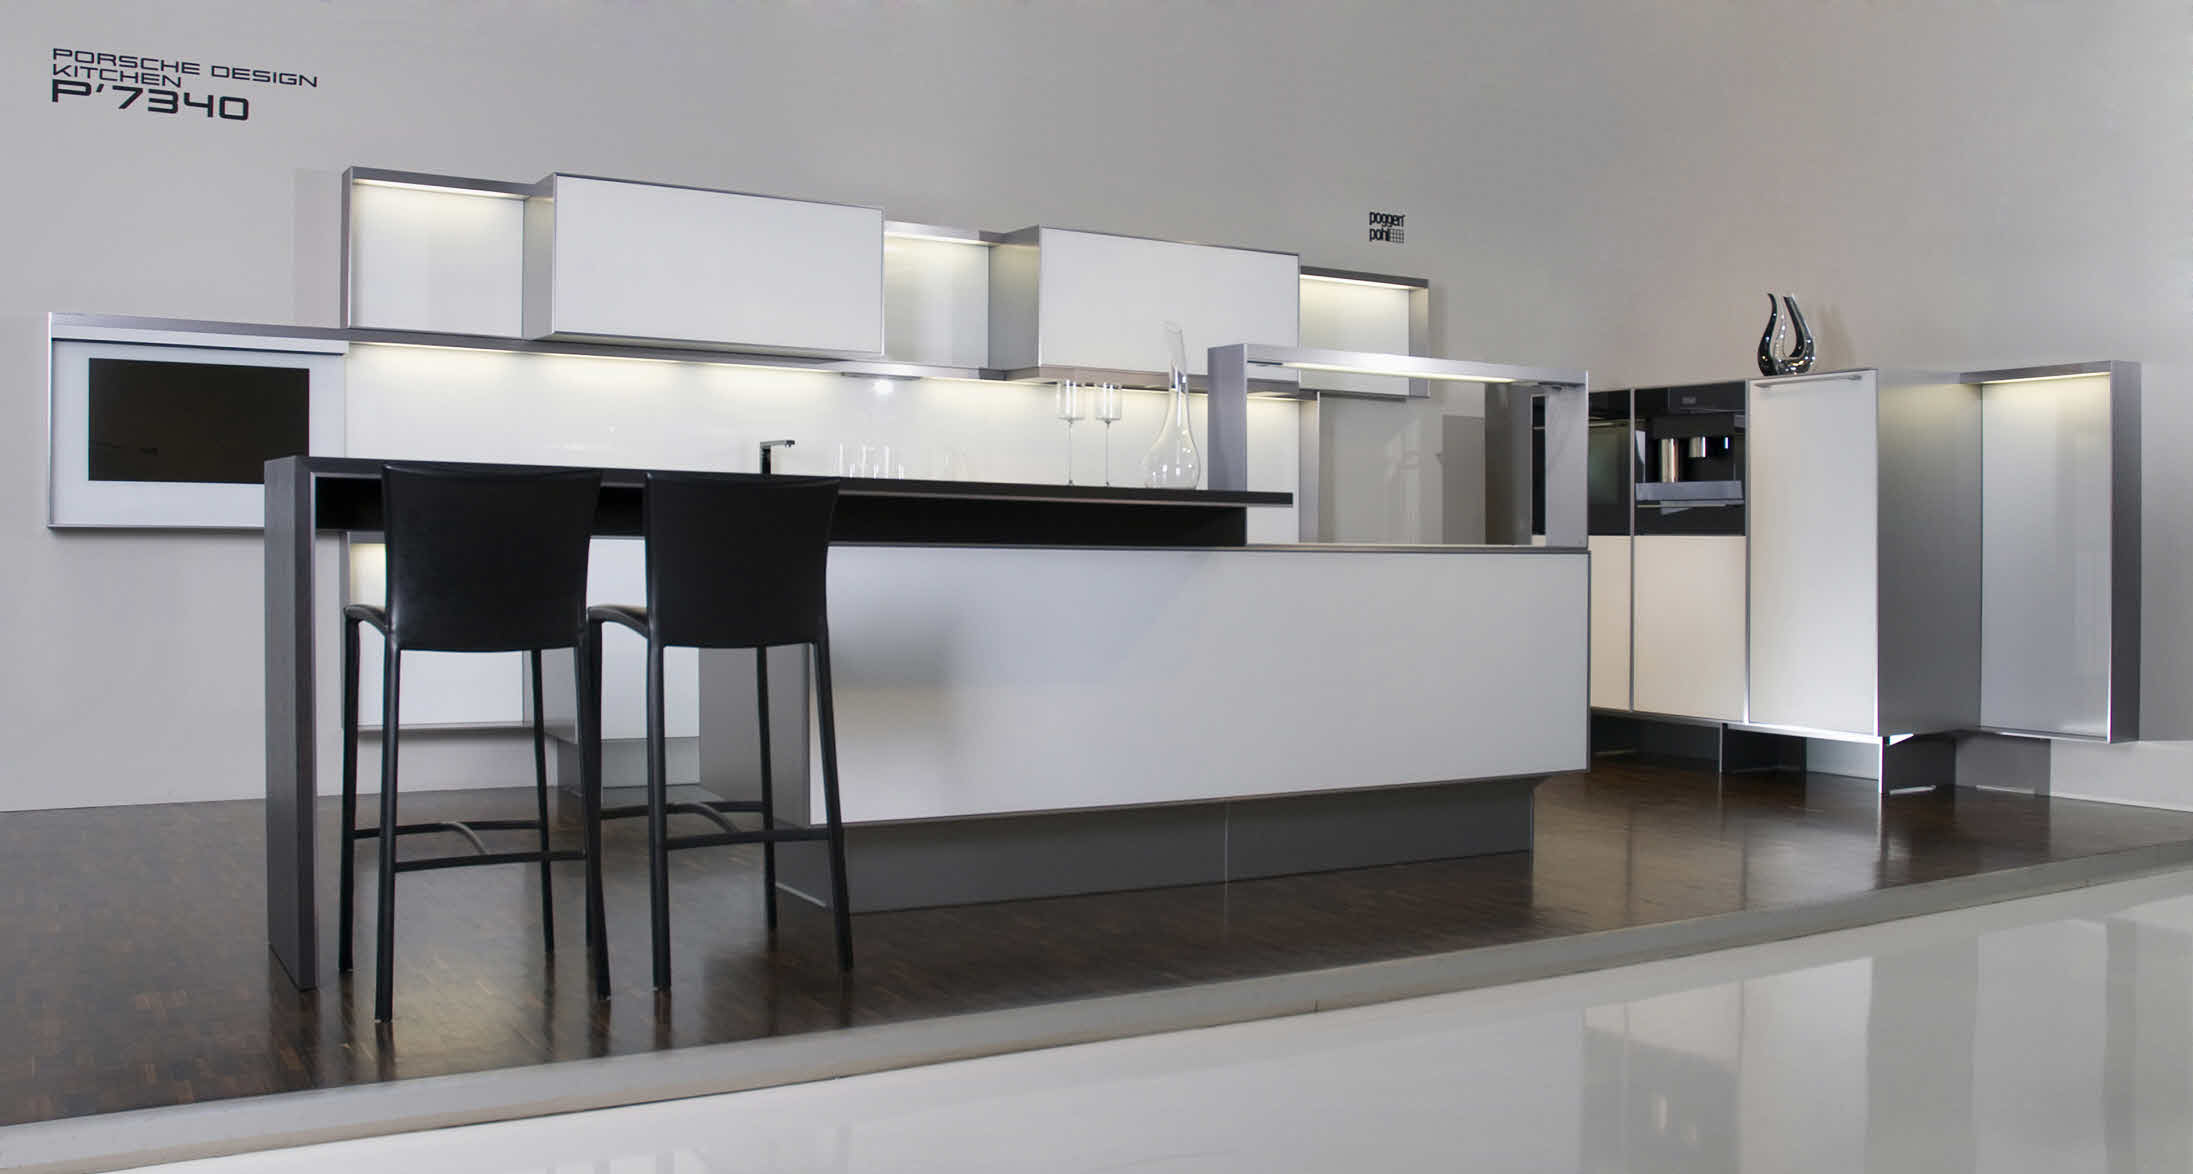 6a98692fbb0d P 7340 Kitchen by Porsche Design